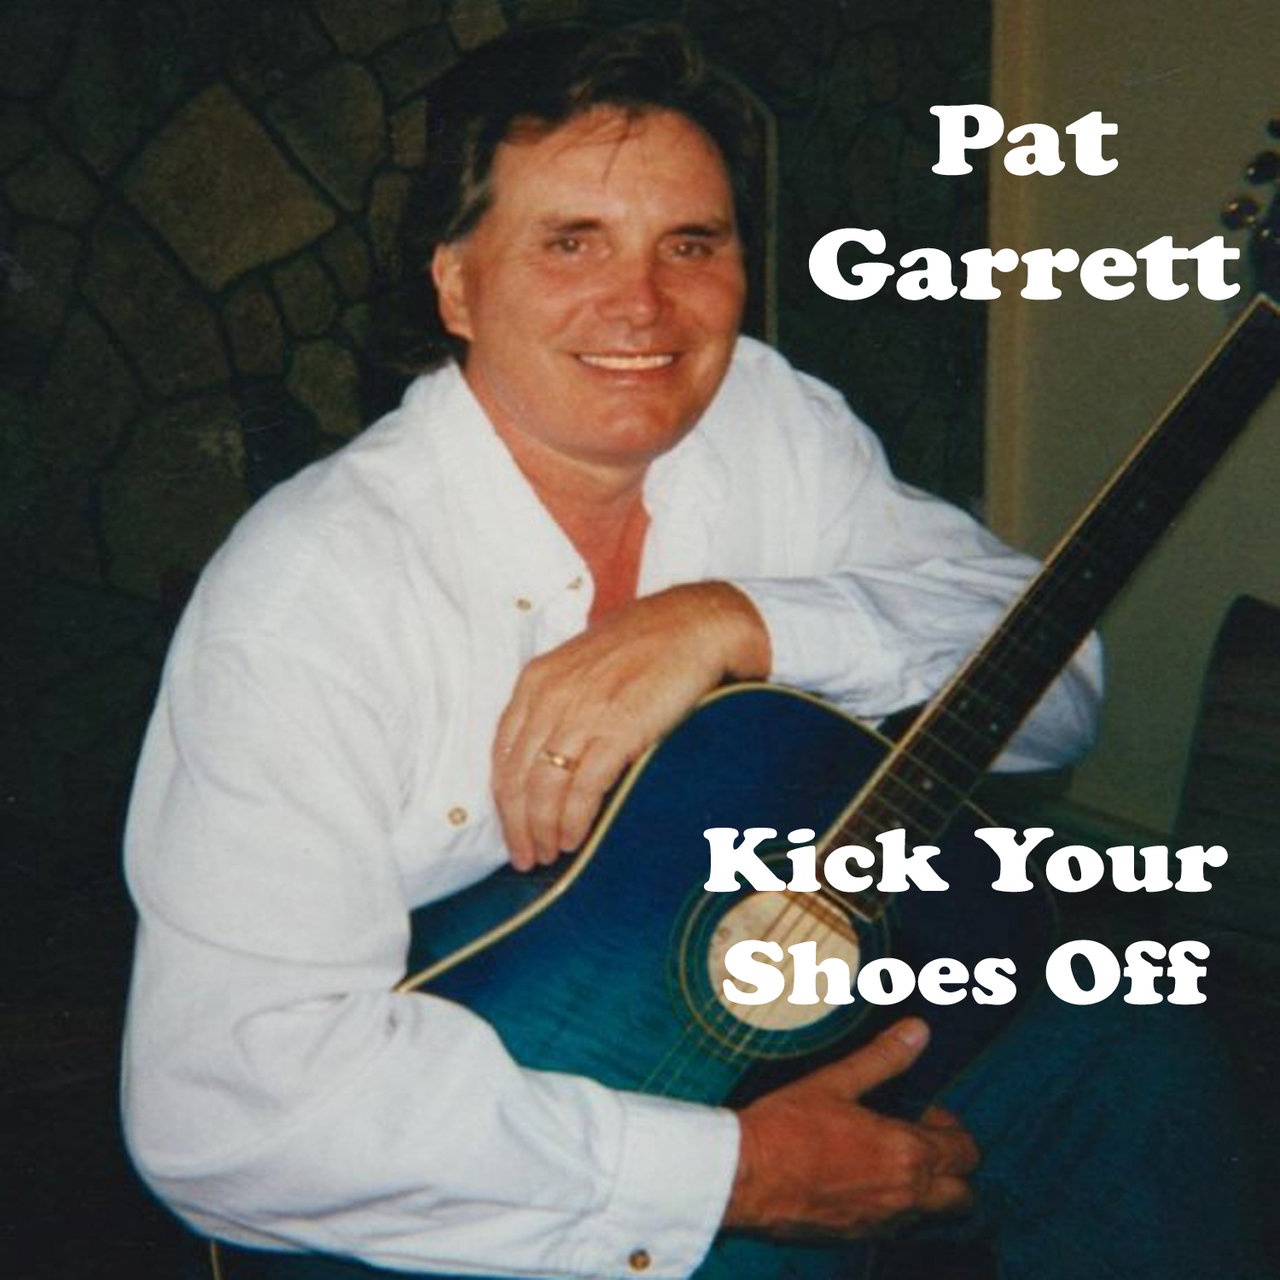 Kick Your Shoes Off